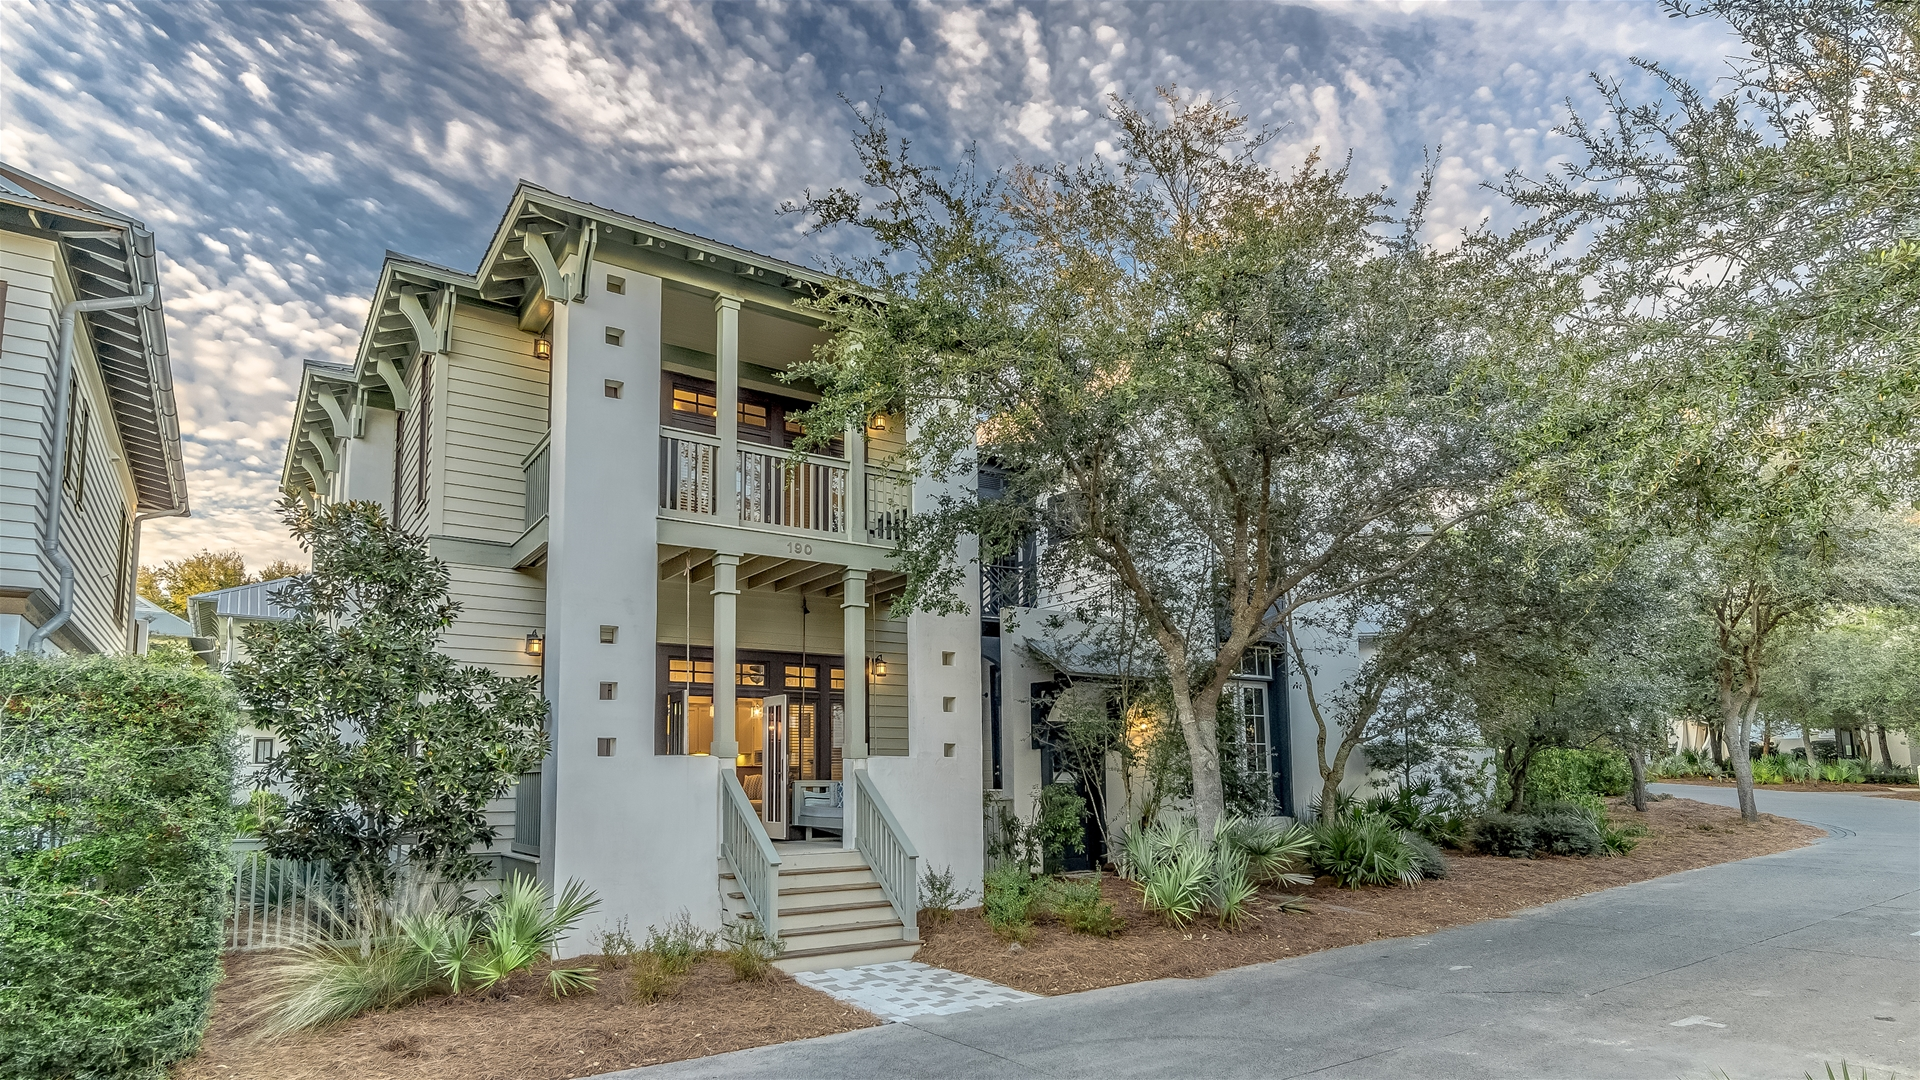 Summer Cottage Vacation Rental In Rosemary Beach Fl 30a Escapes